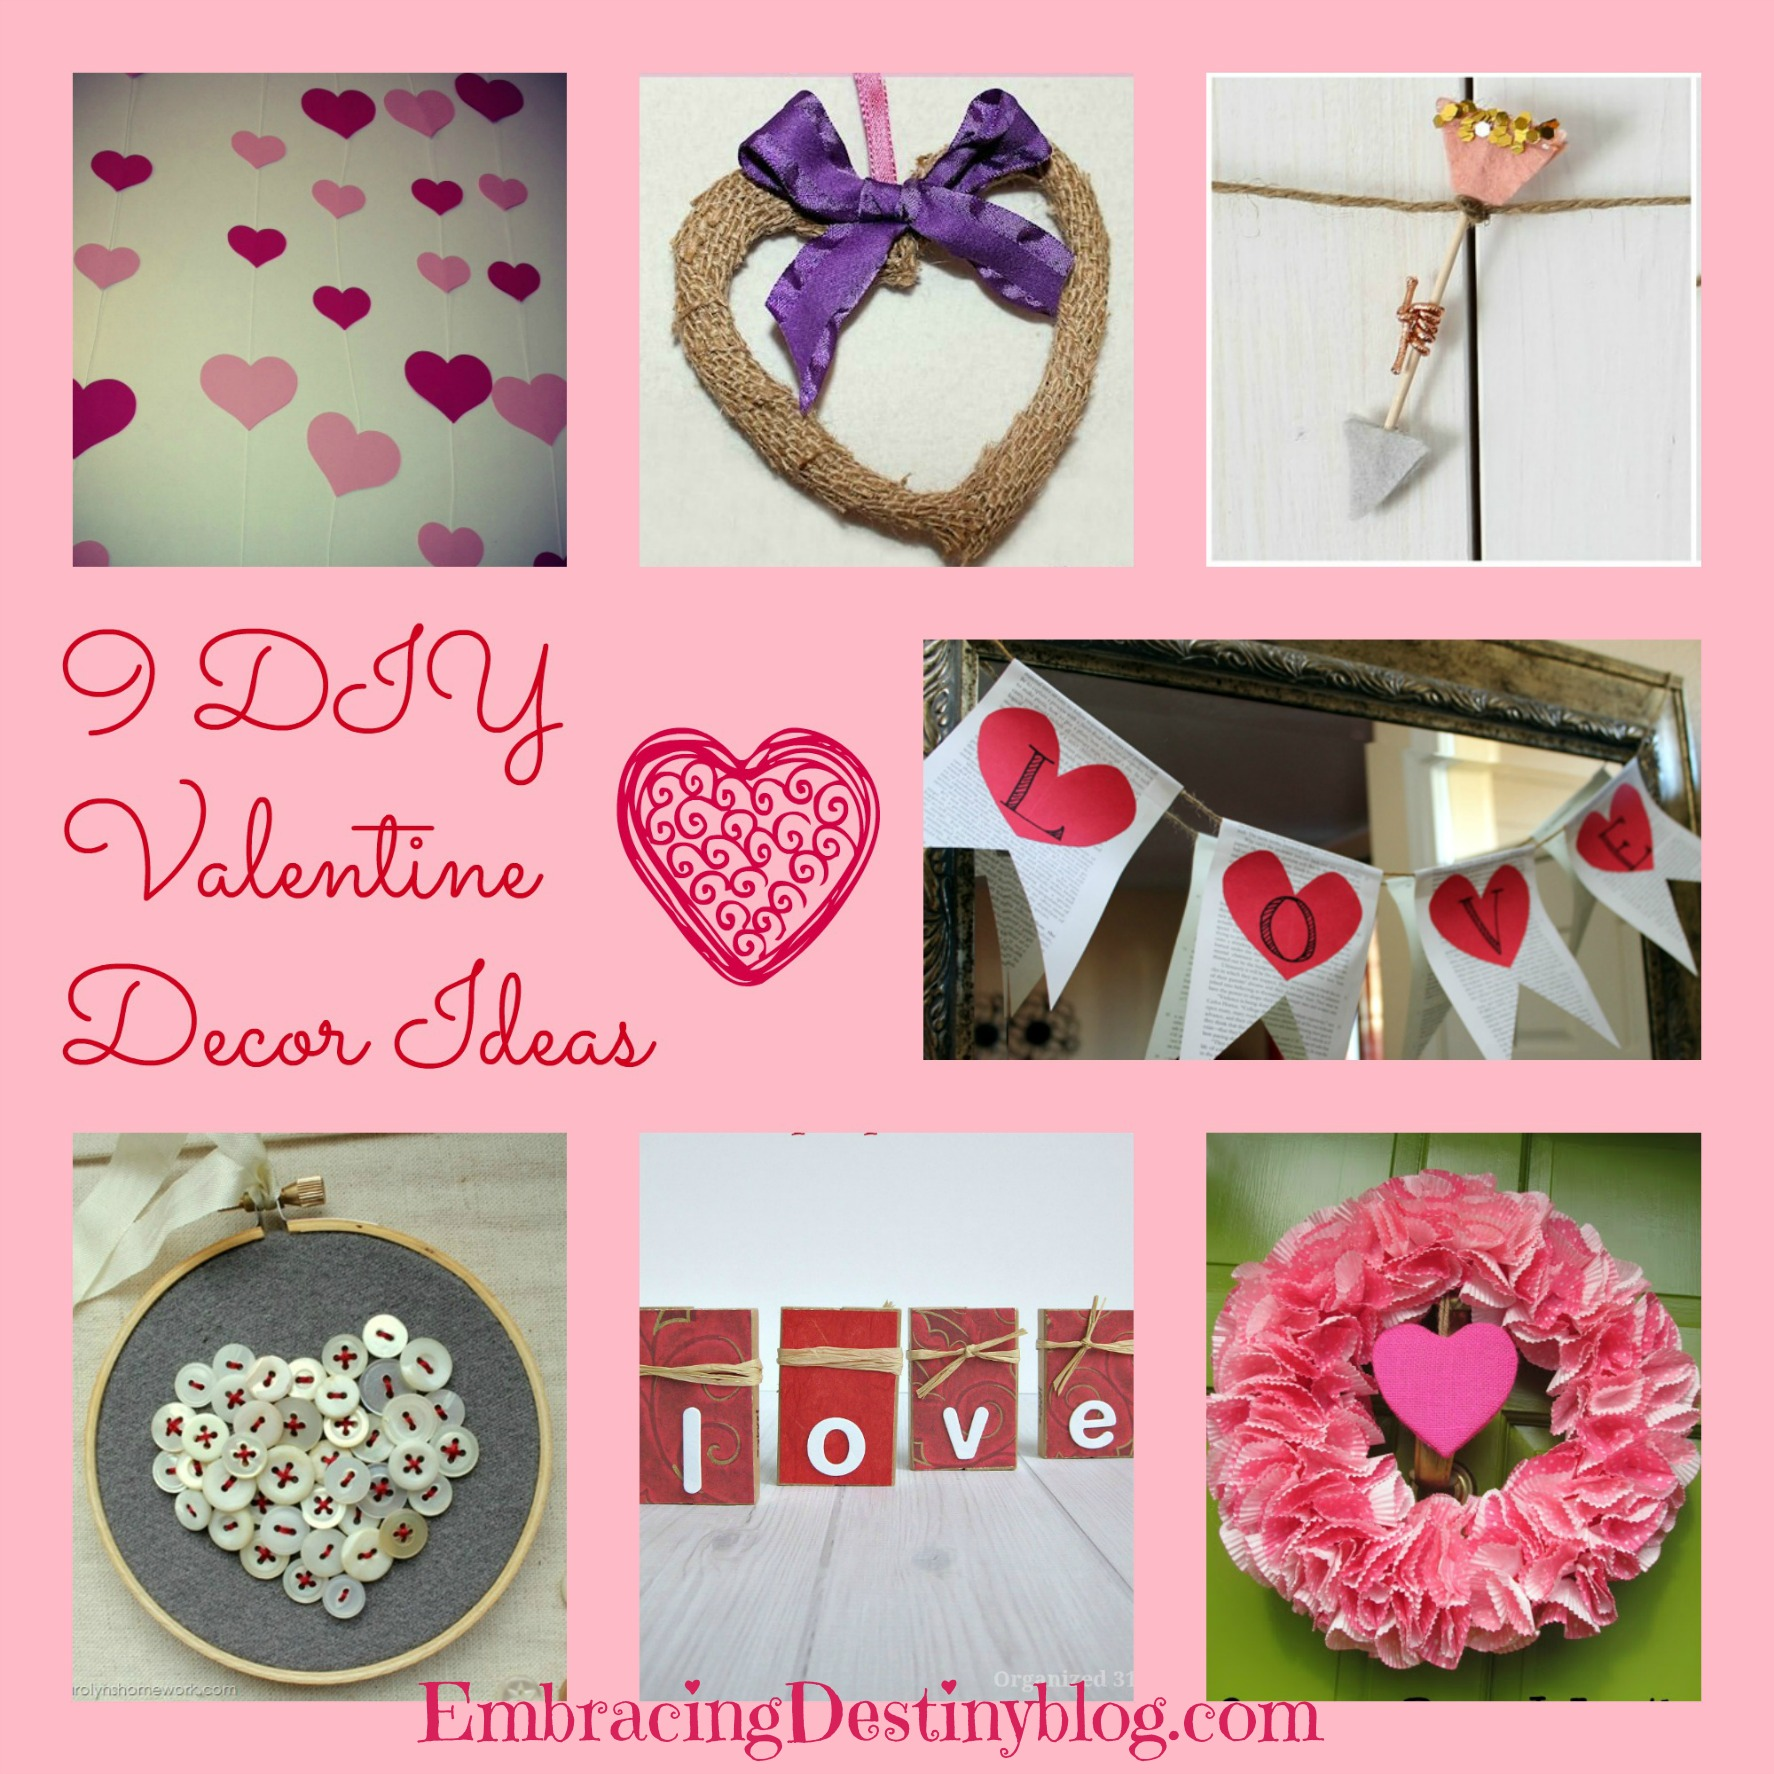 9 diy valentine decor ideas embracing destiny